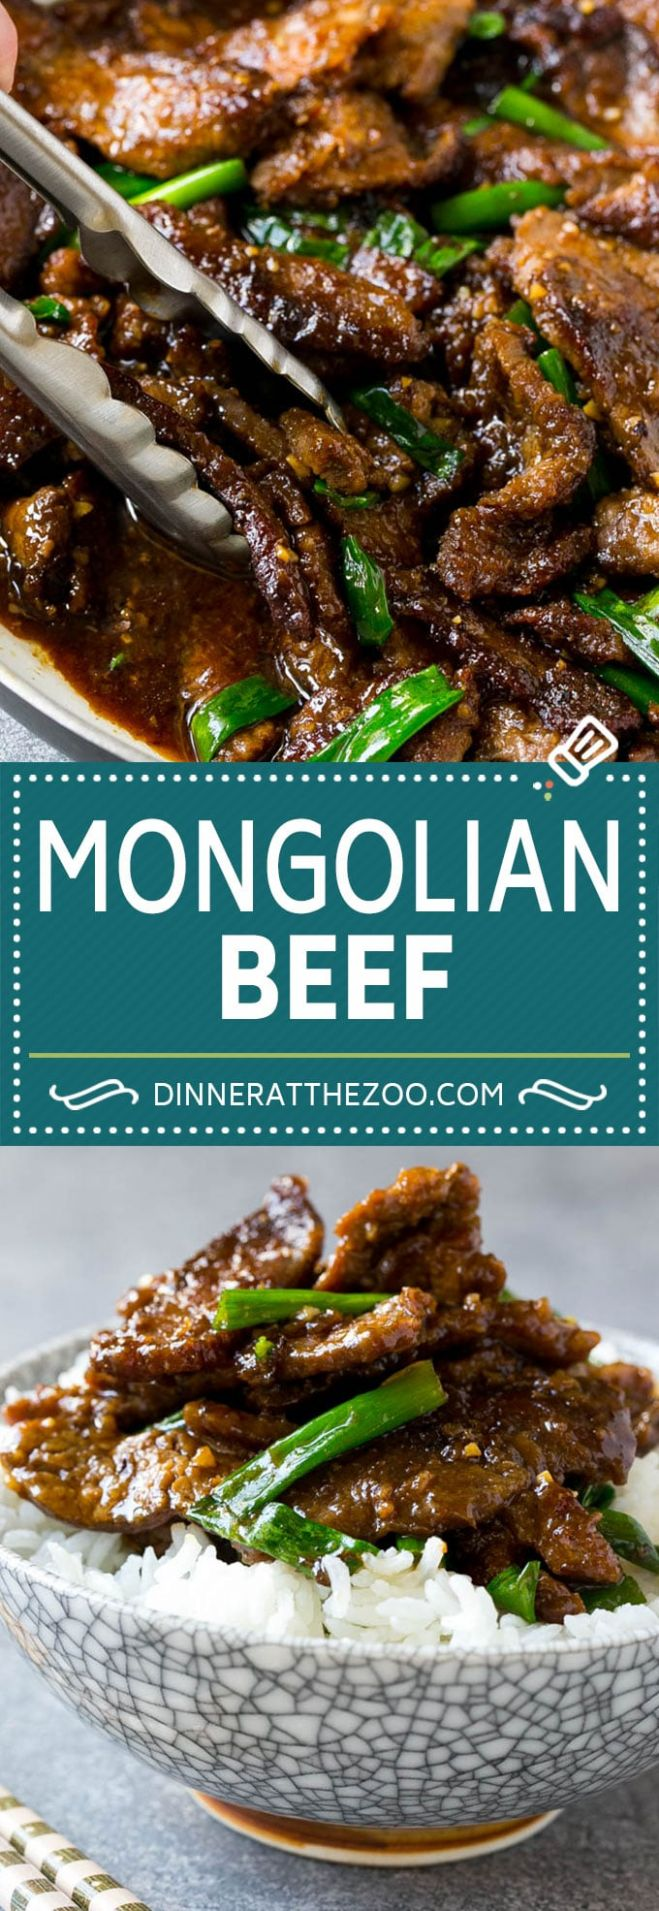 Mongolian Beef - Dinner at the Zoo - Beef Recipes For Dinner